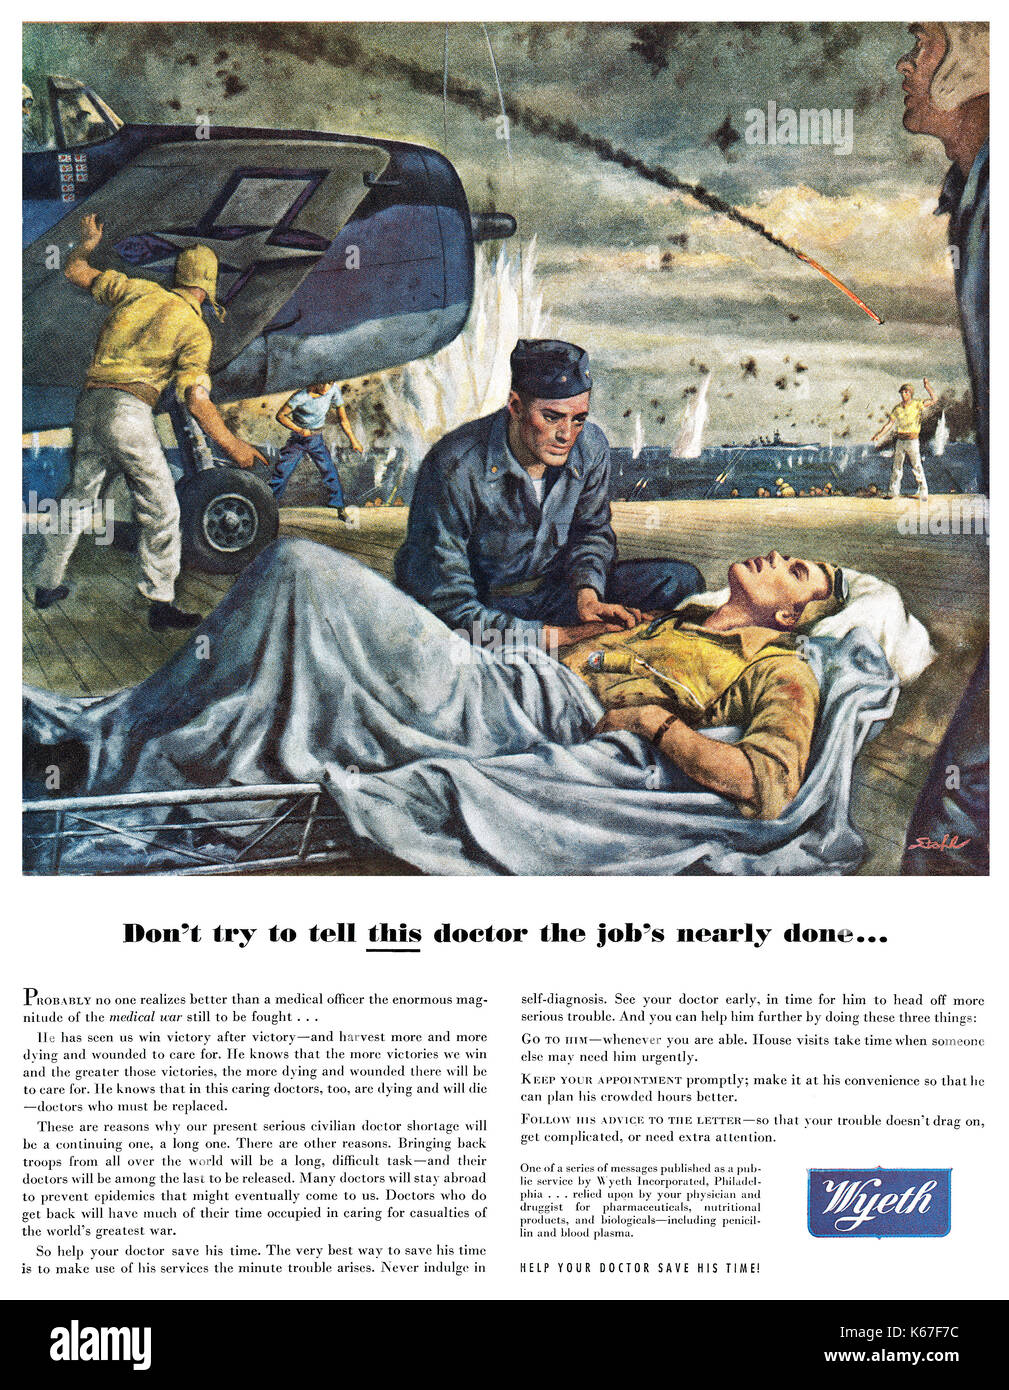 1945 U.S. wartime advertisement for Wyeth Pharmaceuticals (purchased by Pfizer in 2009.) - Stock Image